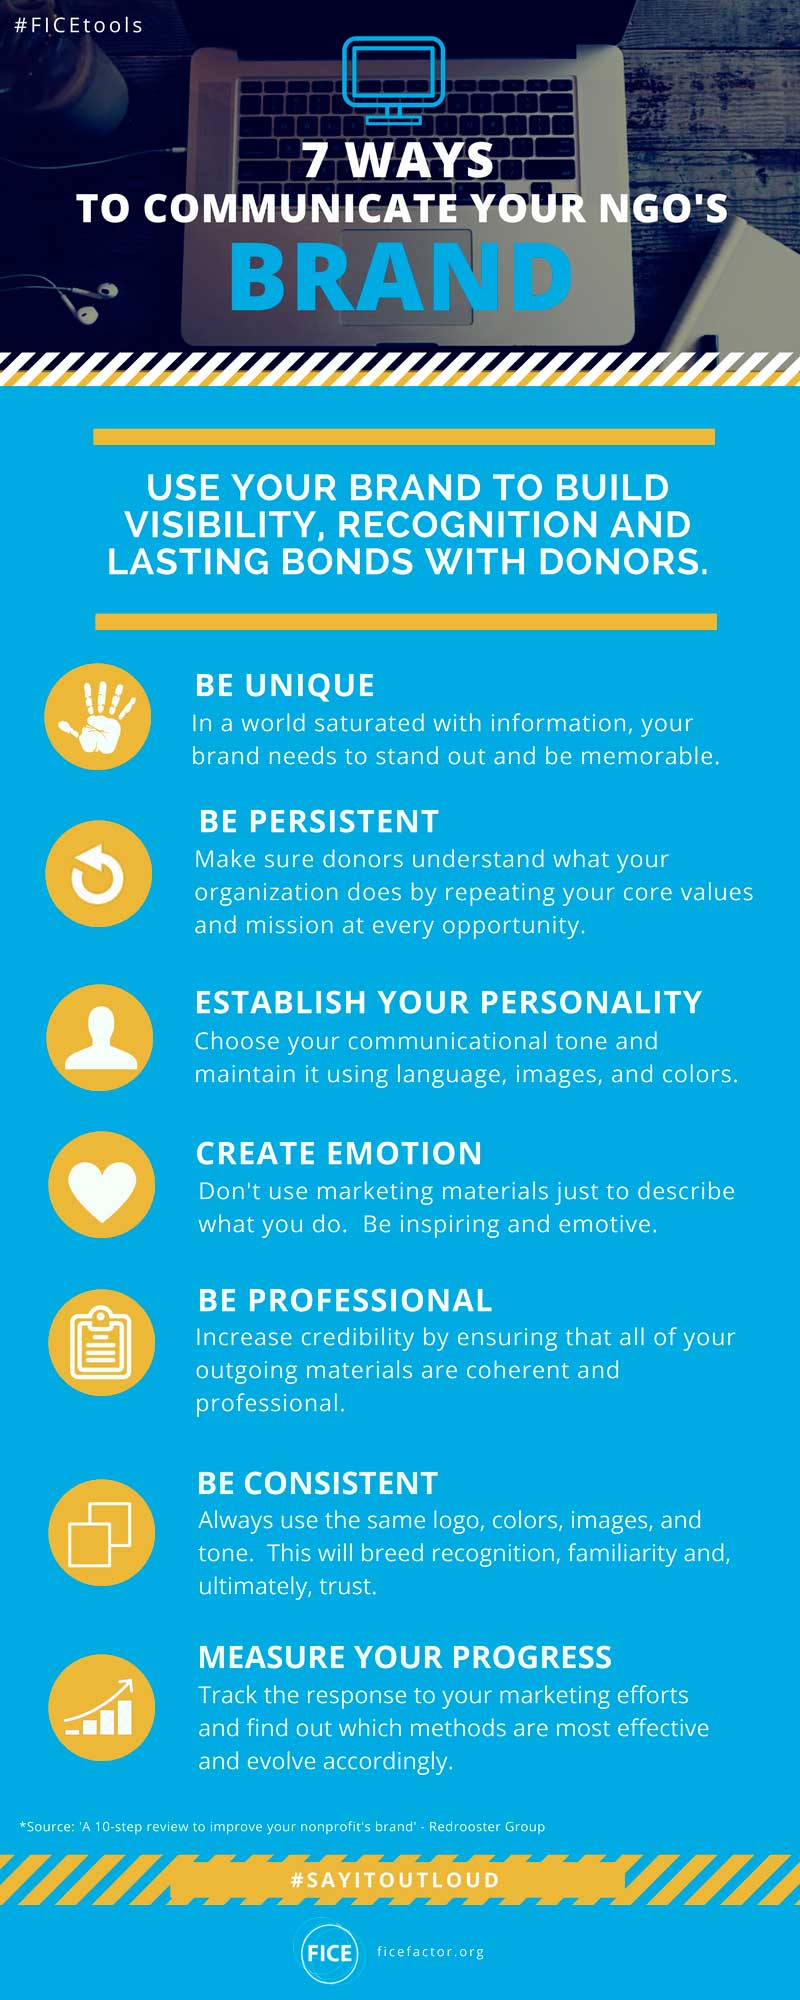 7 ways to communicate your brand